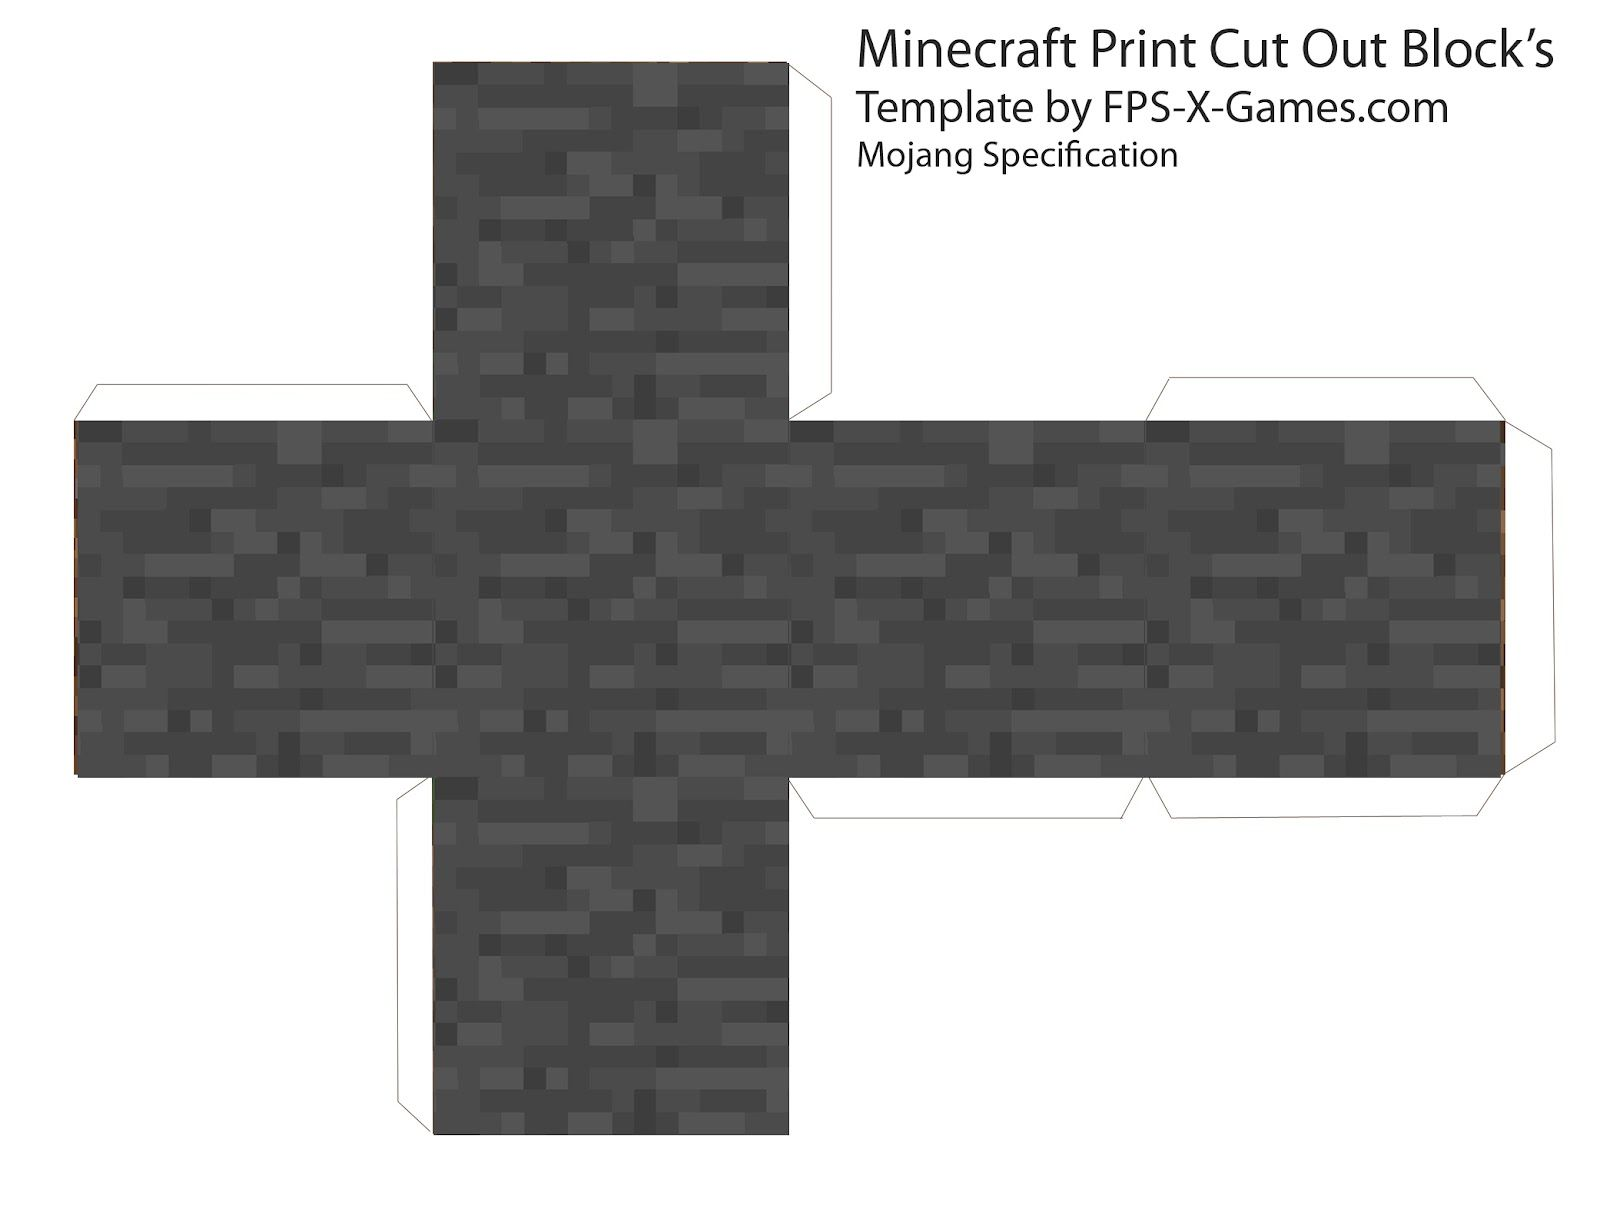 minecraft cut out templates - minecraft print cut out block 1 600 1 206